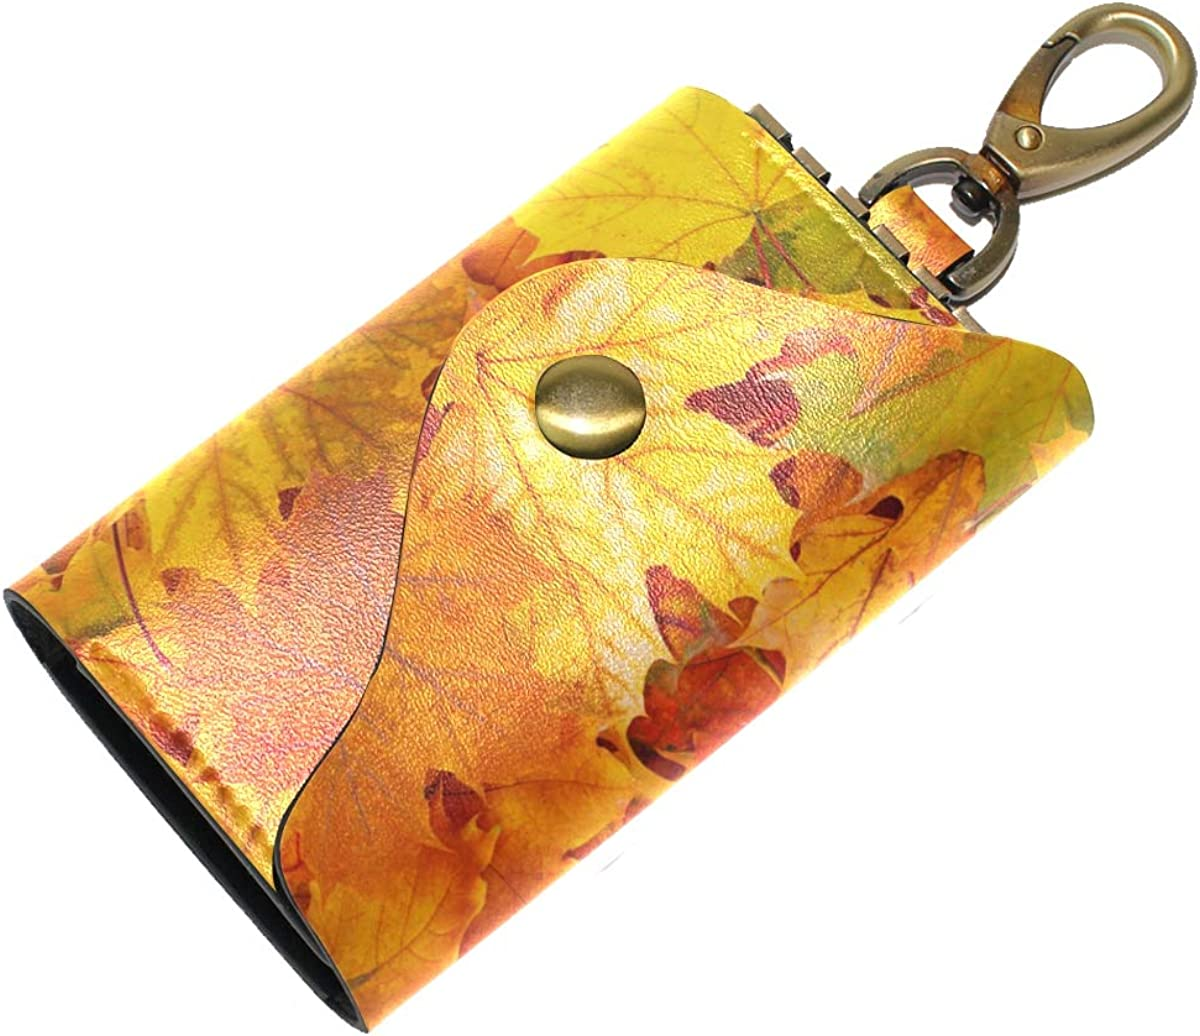 KEAKIA Late Autumn Leather Key Case Wallets Tri-fold Key Holder Keychains with 6 Hooks 2 Slot Snap Closure for Men Women